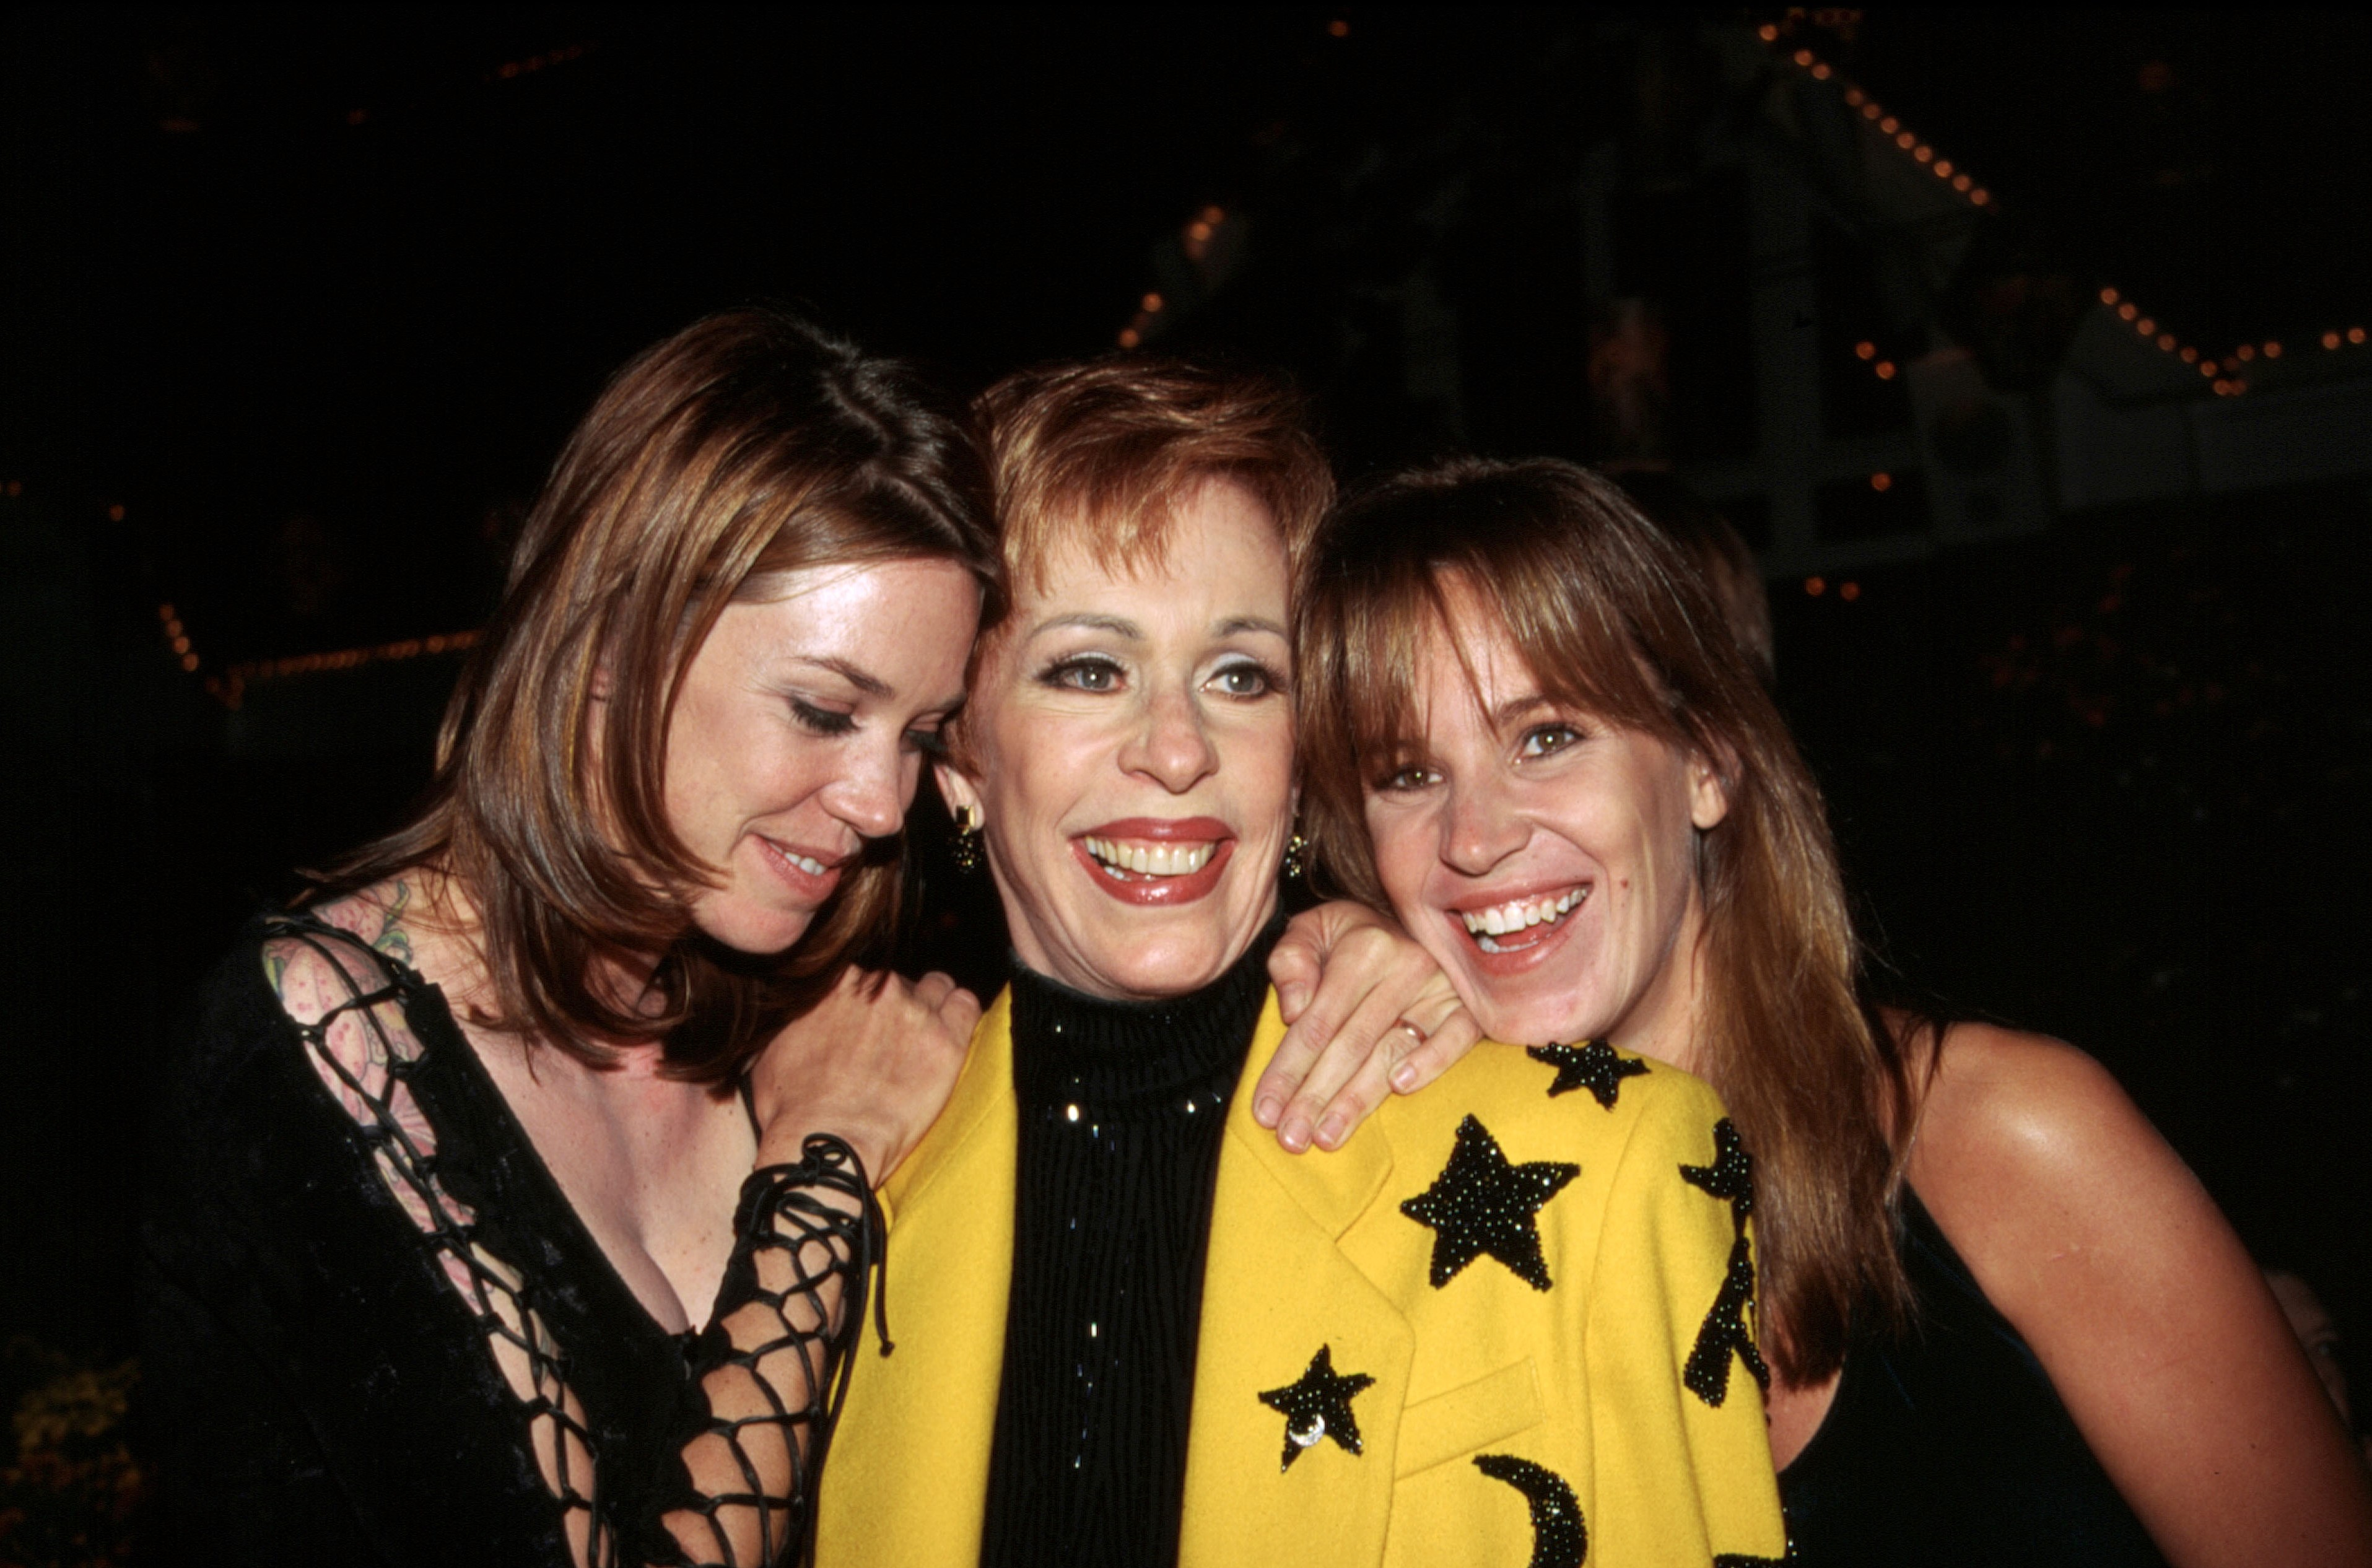 Who Are Carol Burnett S Kids Meet Daughters Jodie Erin And Carrie Carol burnett is being honored at the 2019 golden globes with a lifetime achievement award to be named after her. https www closerweekly com posts who are carol burnetts kids meet daughters jodie erin and carrie